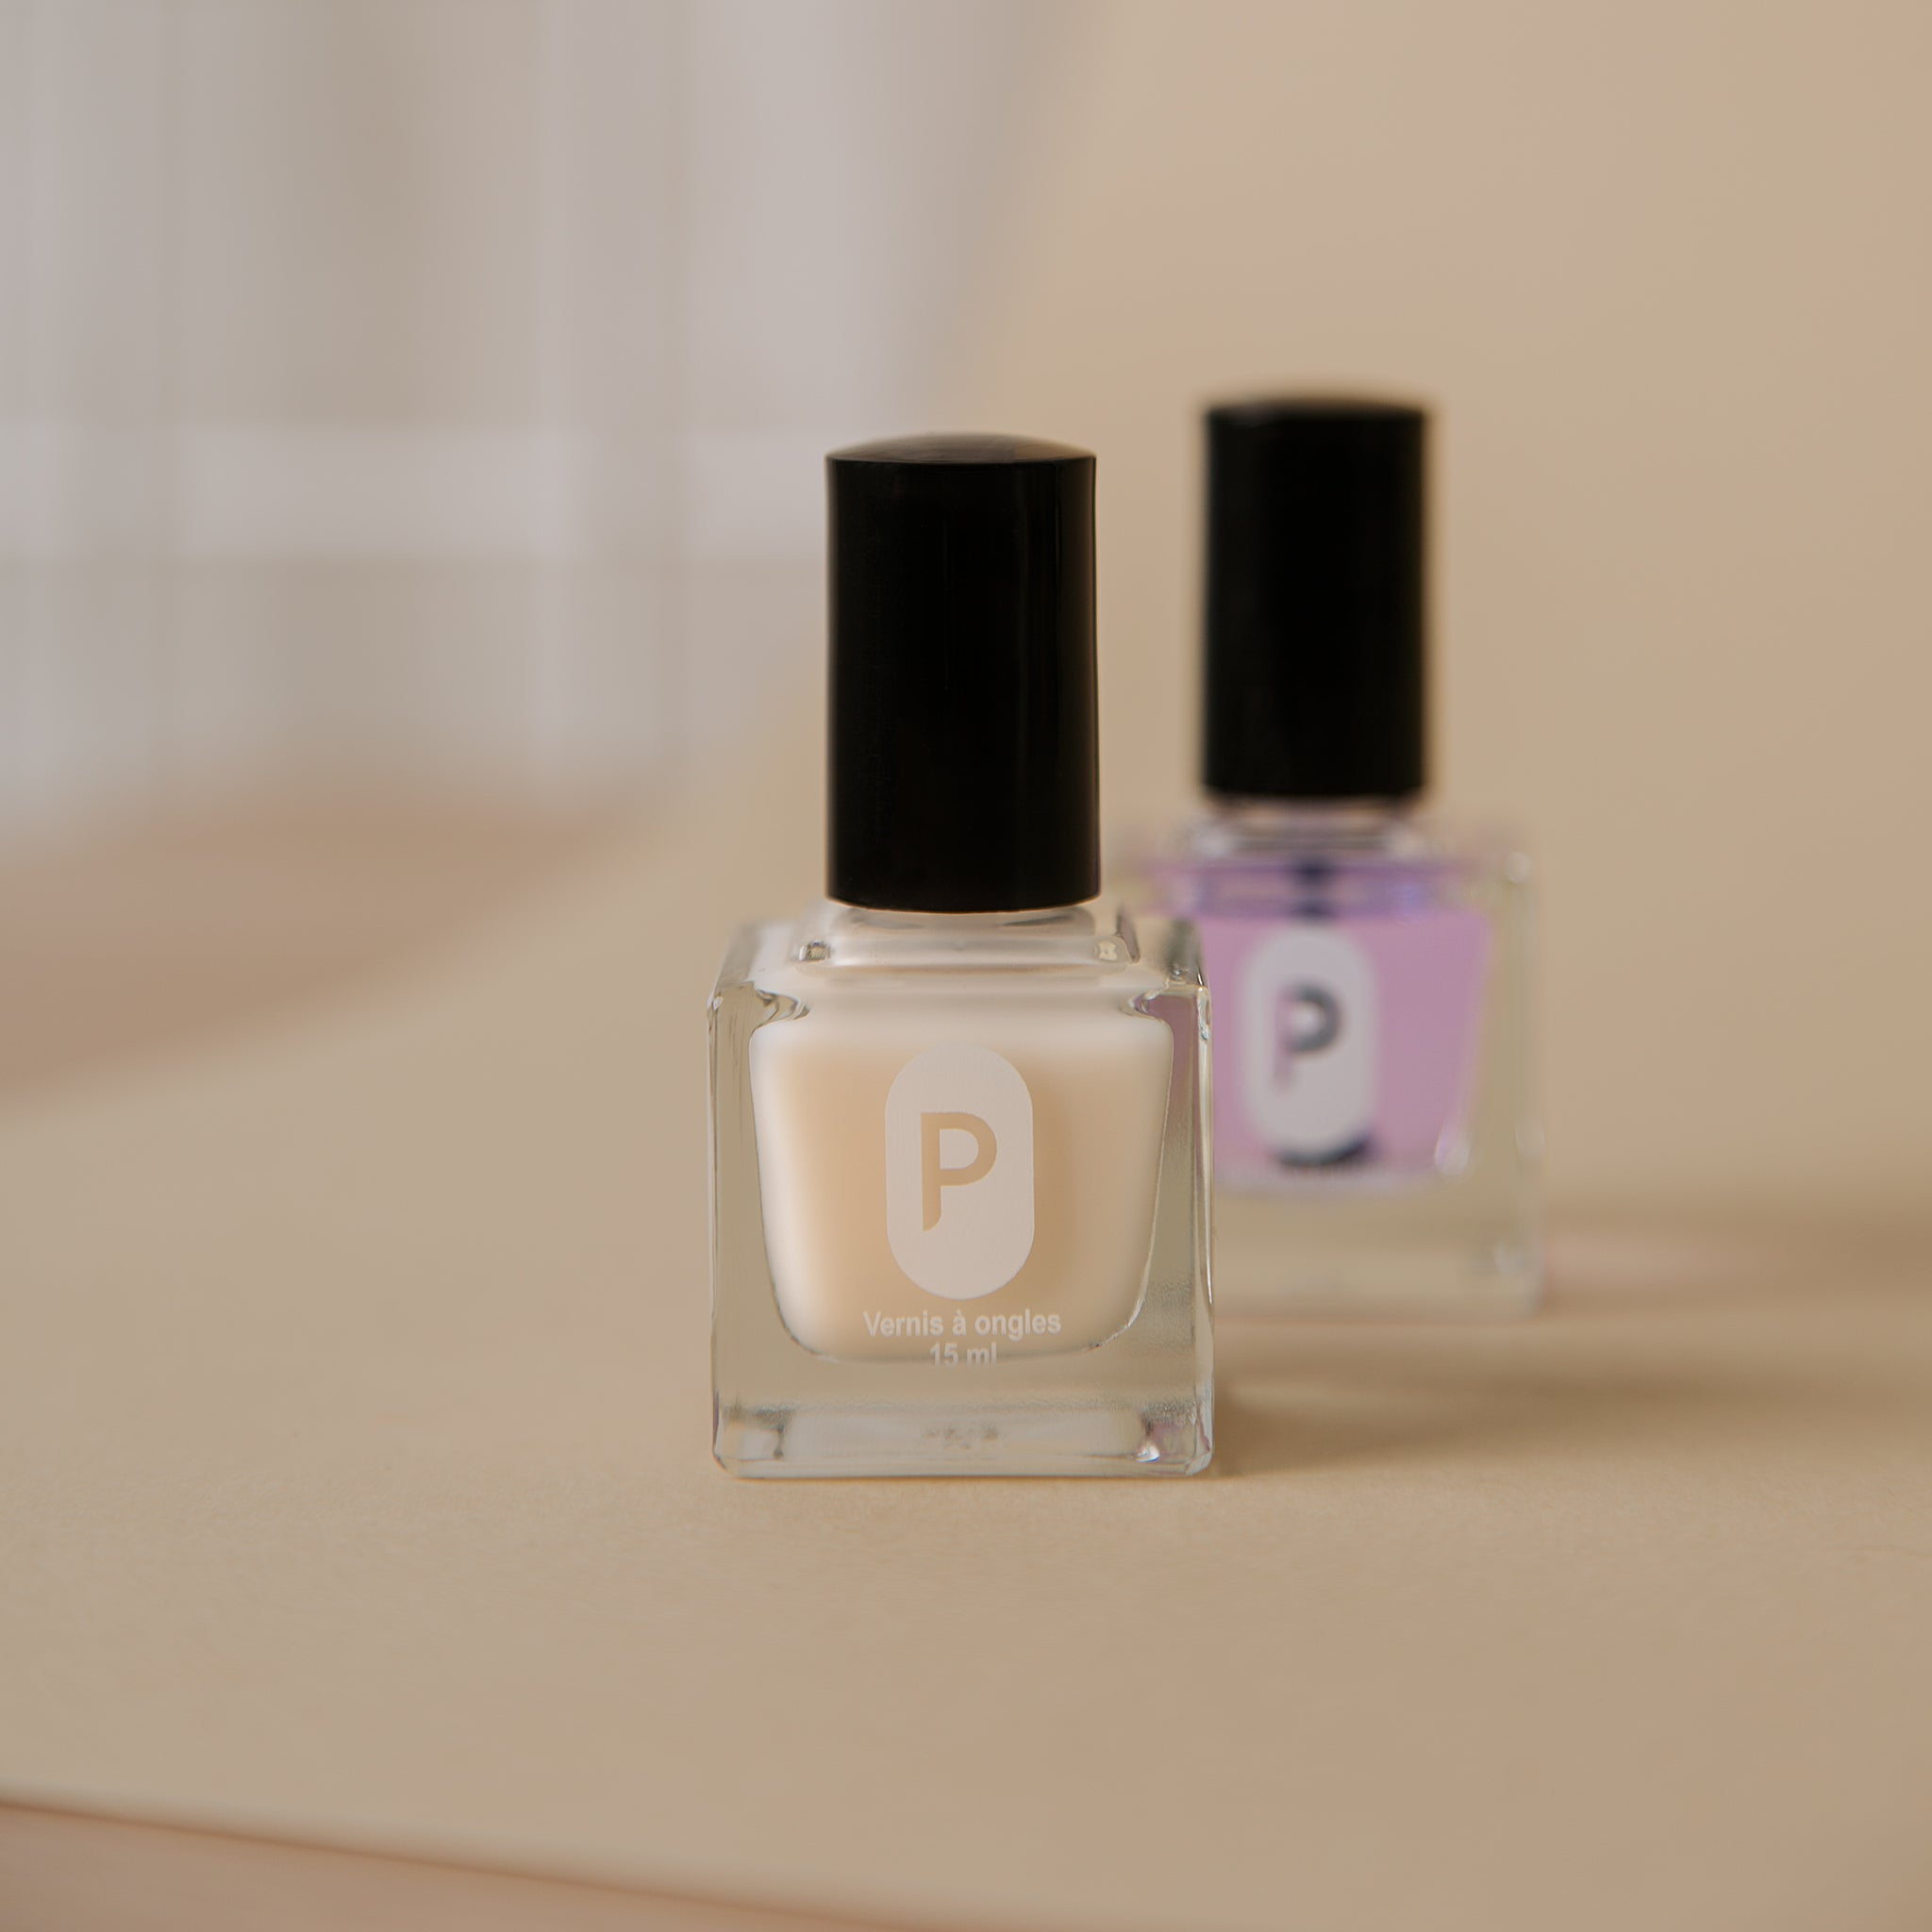 Duo vernis de base et vernis de finition Primerose